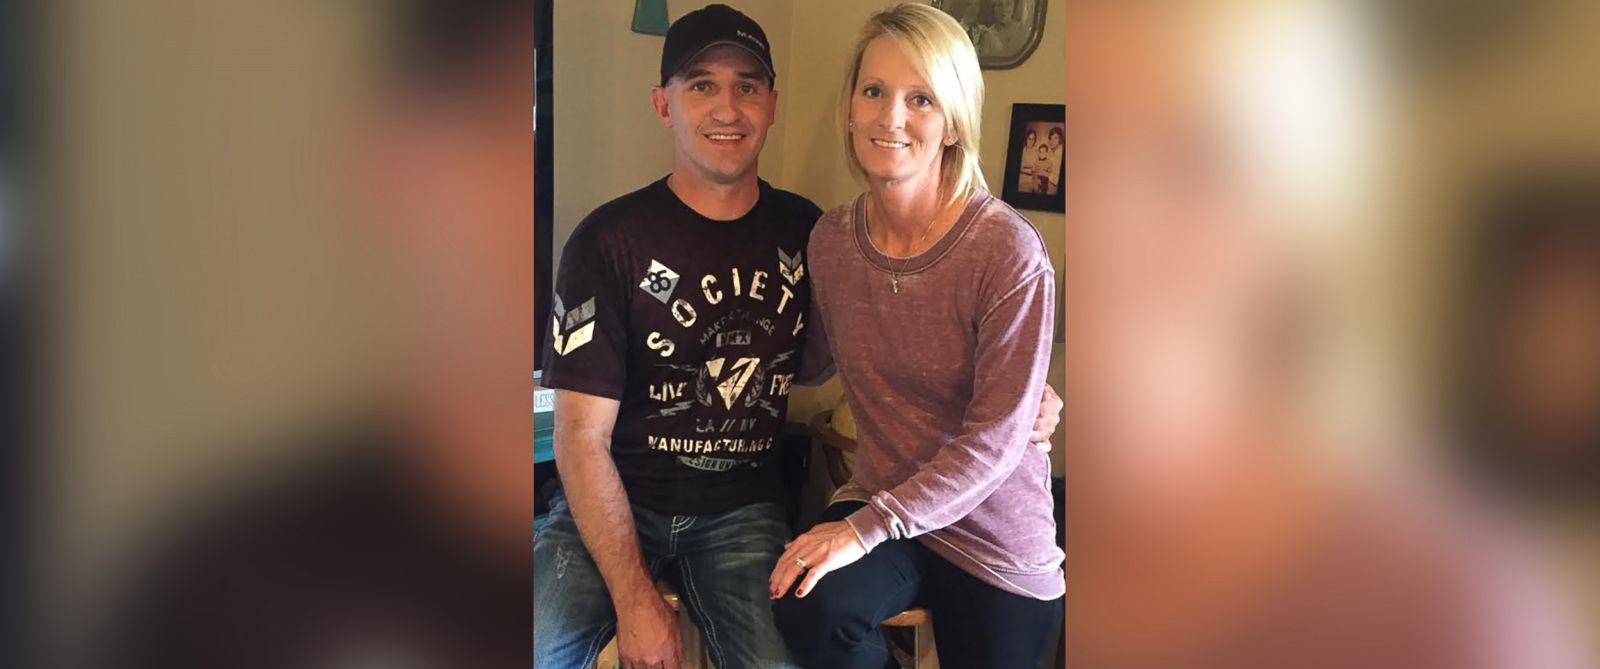 PHOTO:Trisha OQuinn was finally able to track down Jenni Easter to return her diamond ring 13 years after she lost it in an Oklahoma pond.